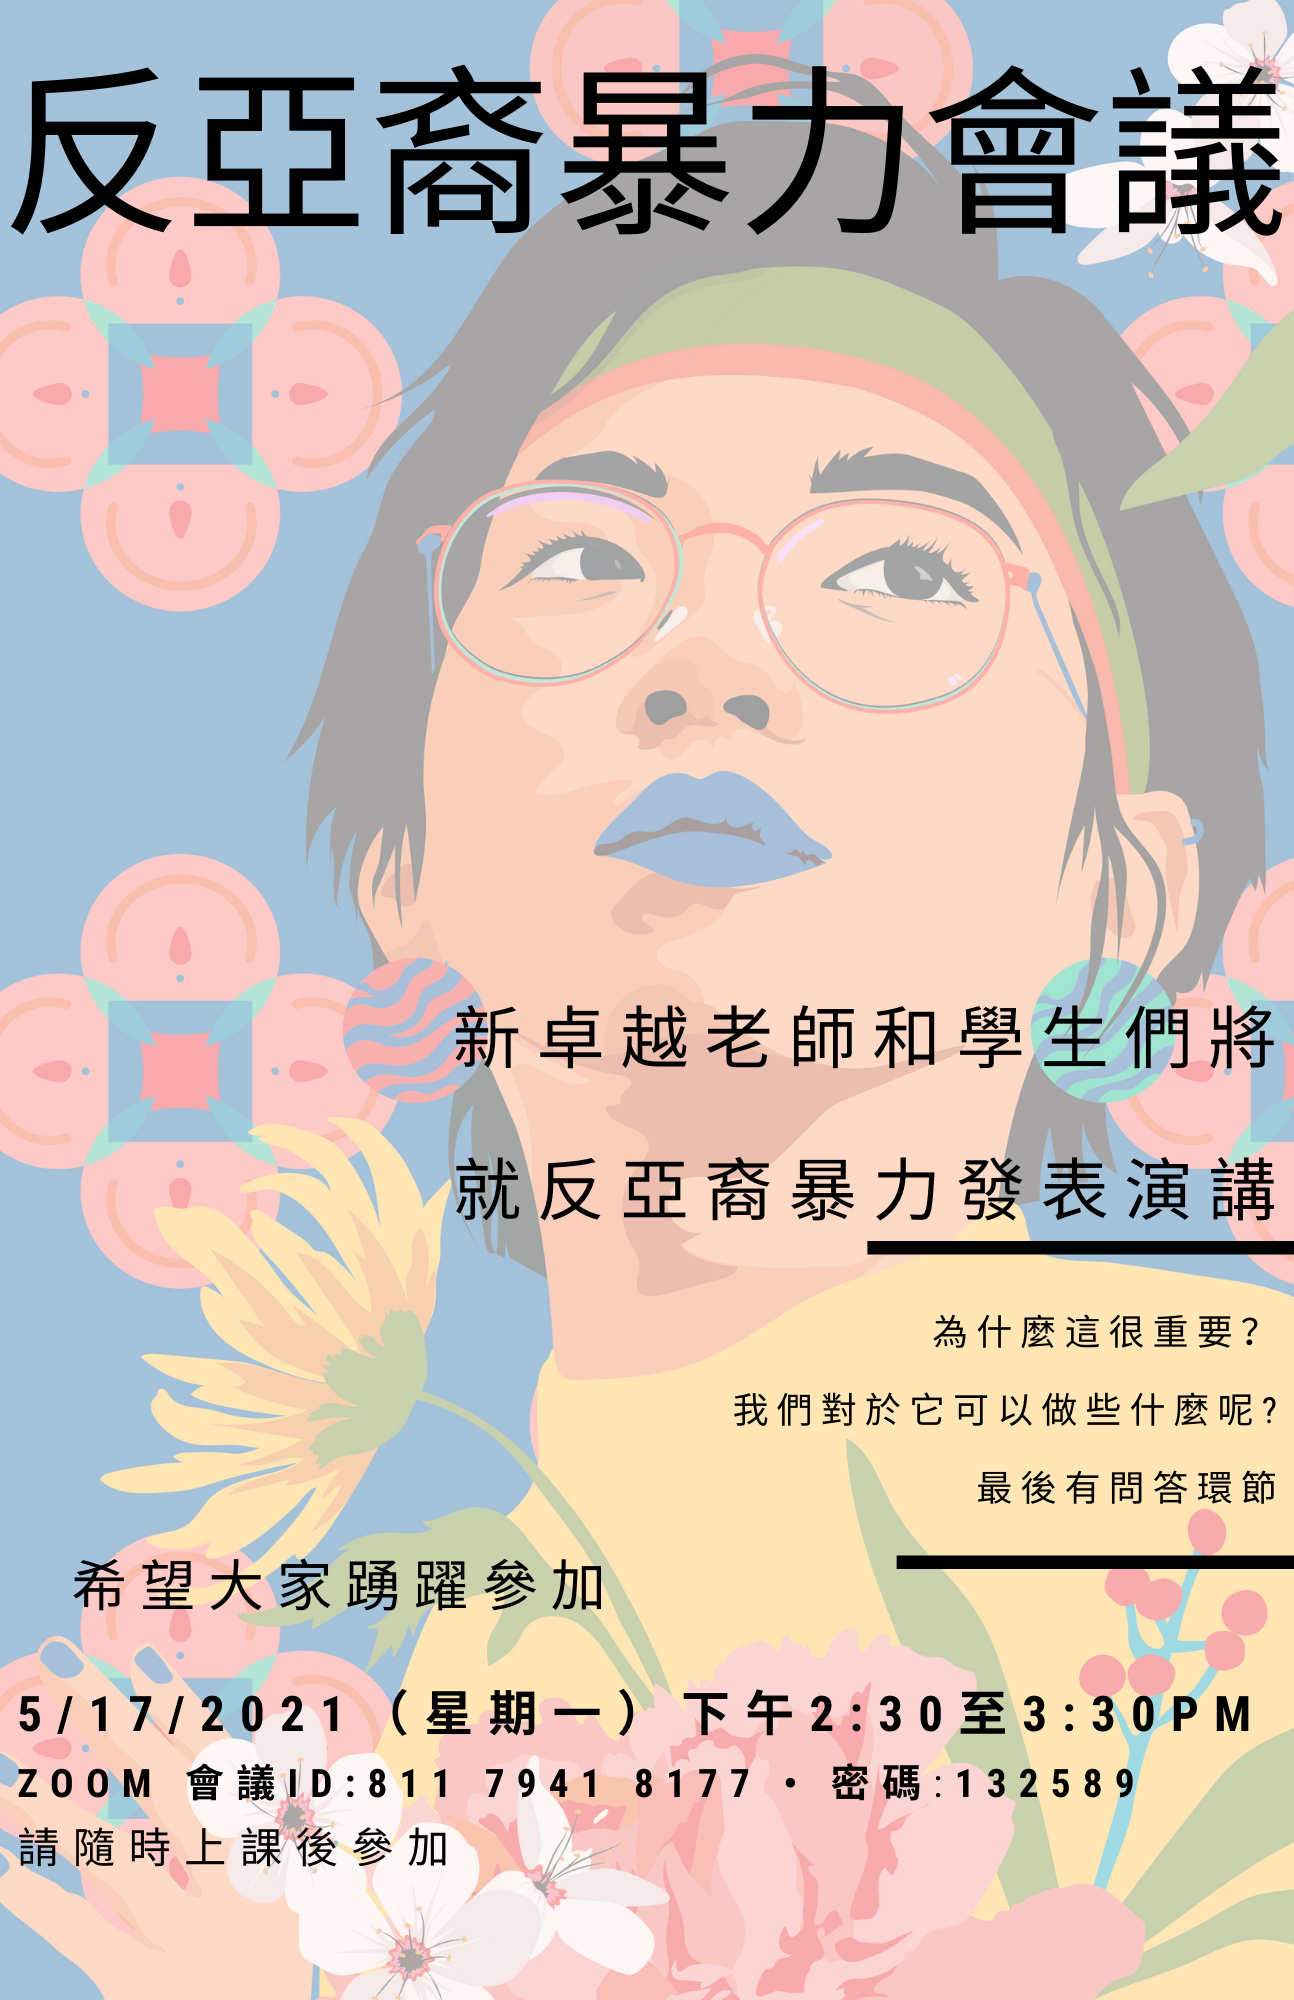 Anti-Asian Violence Chinese Flyer 2